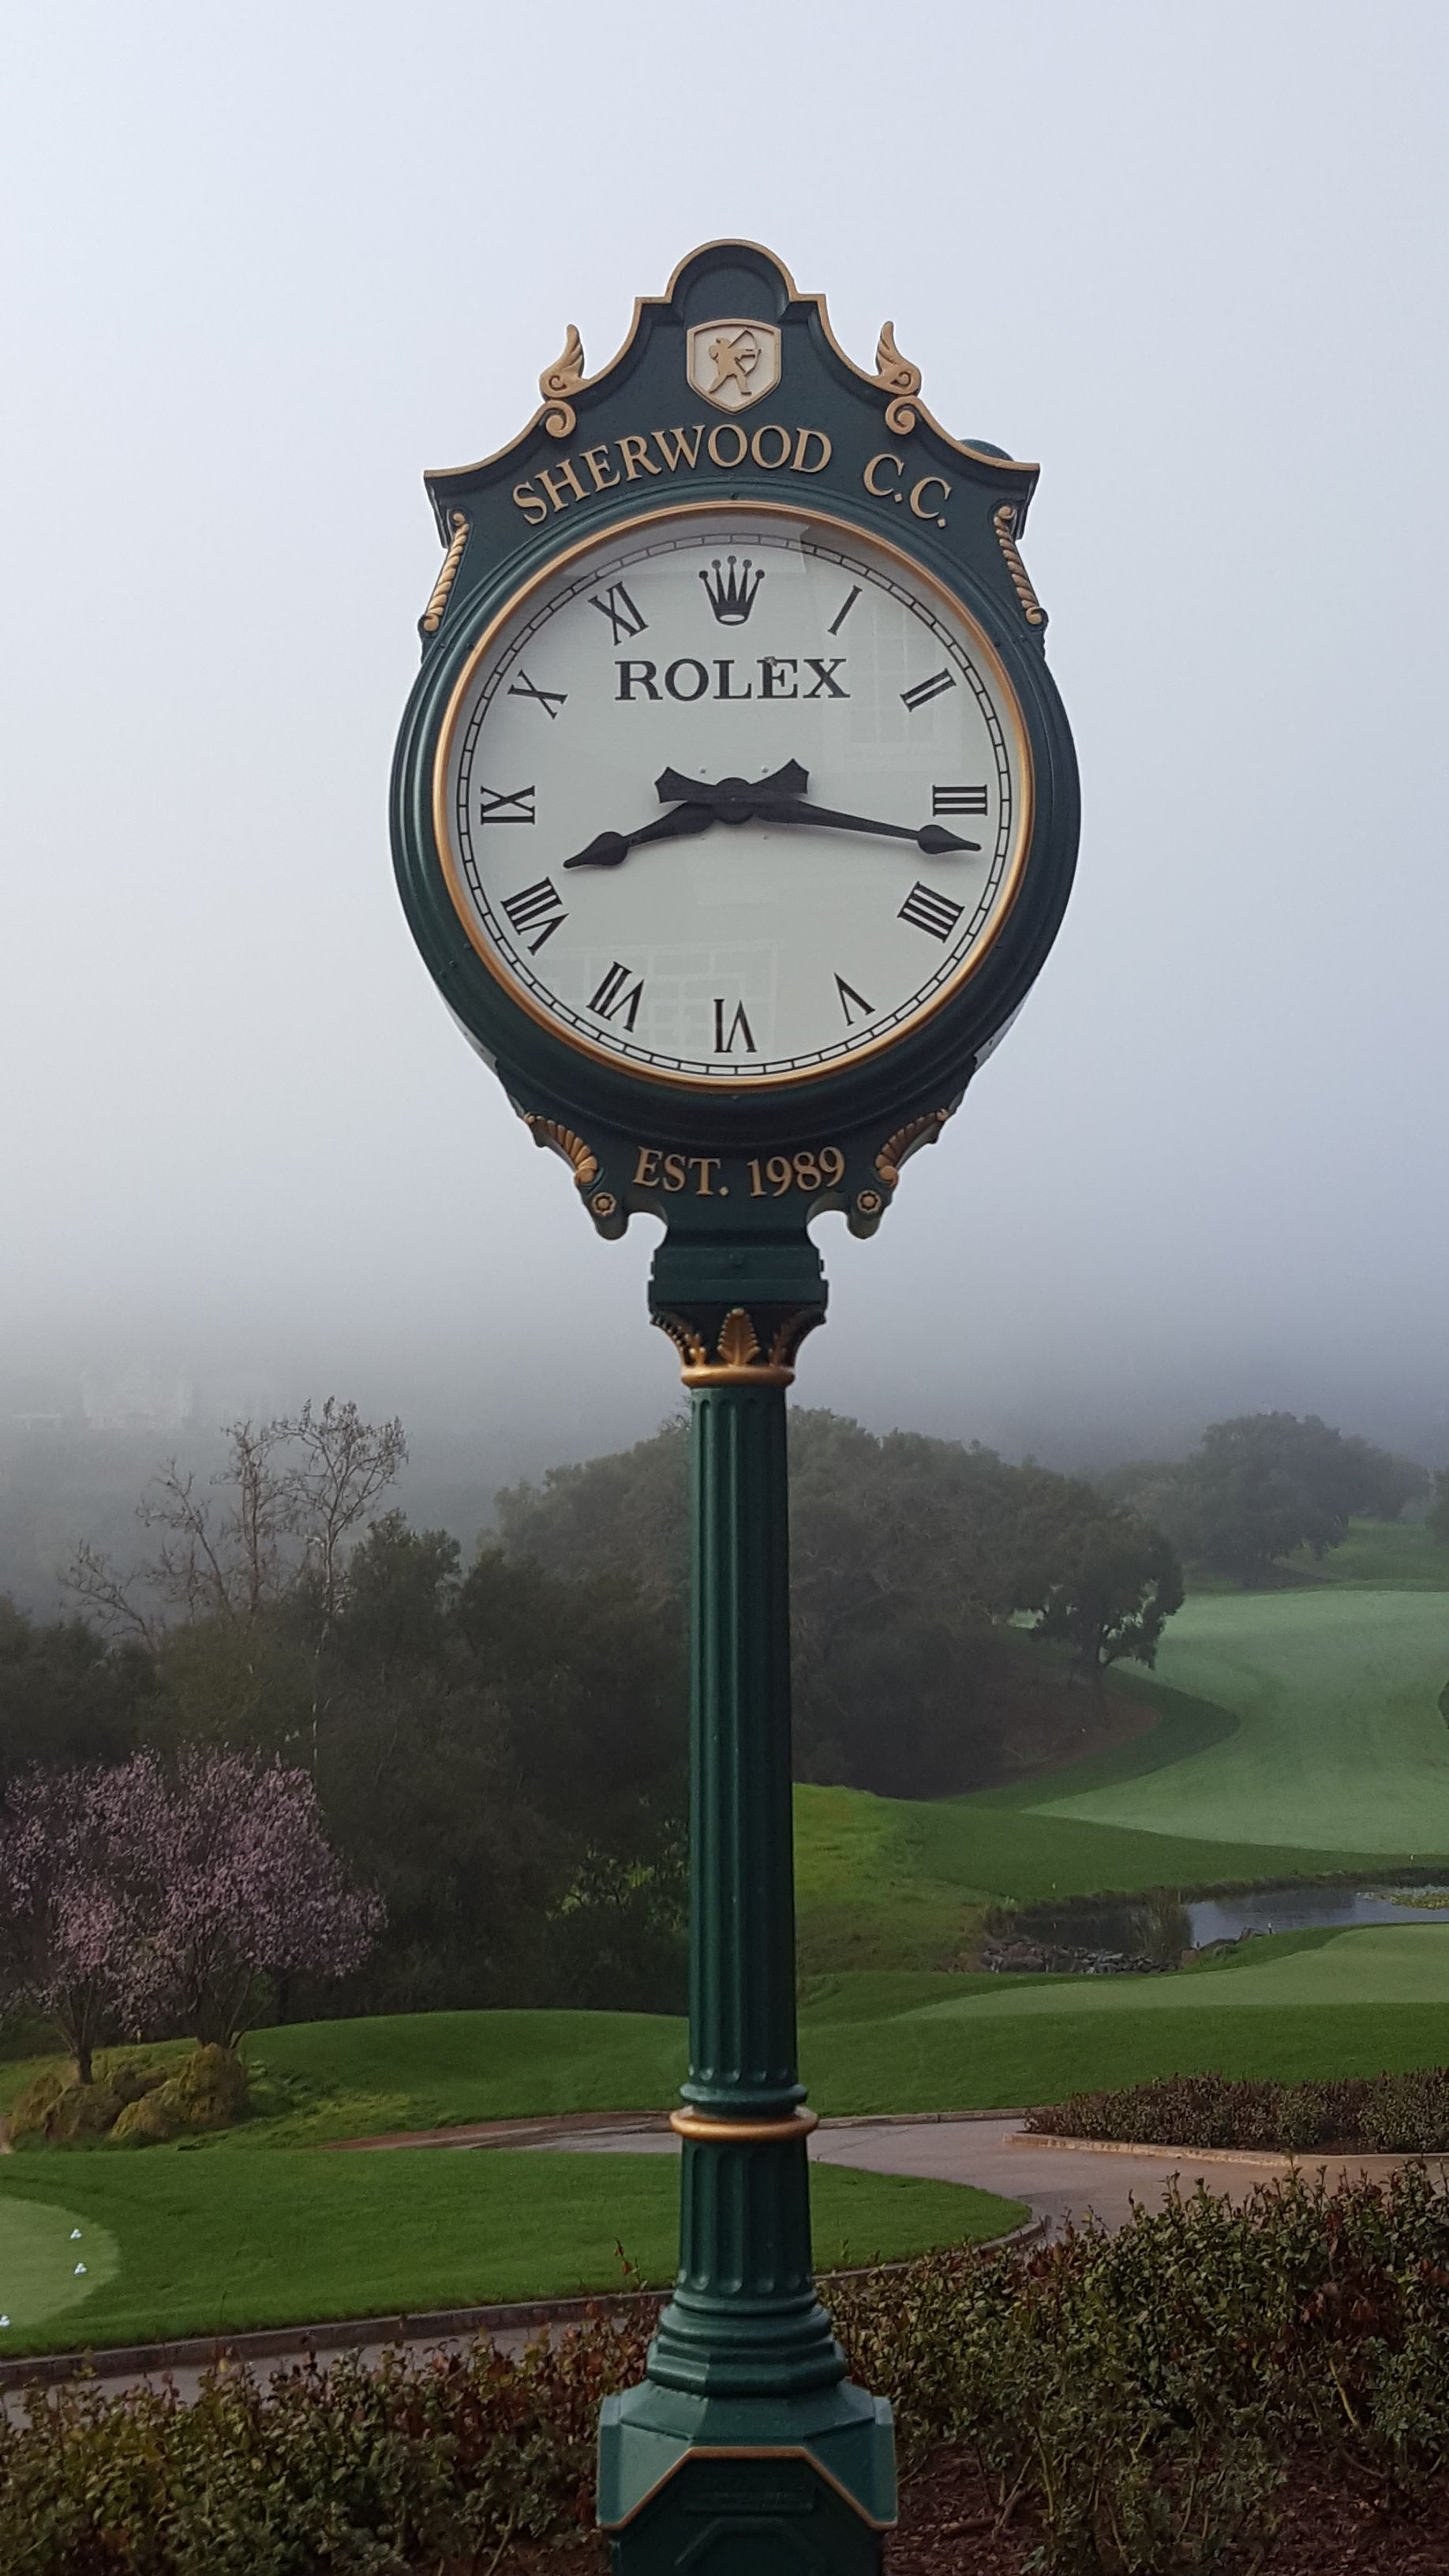 I need a golf clock in my backyard. For some reason I take a